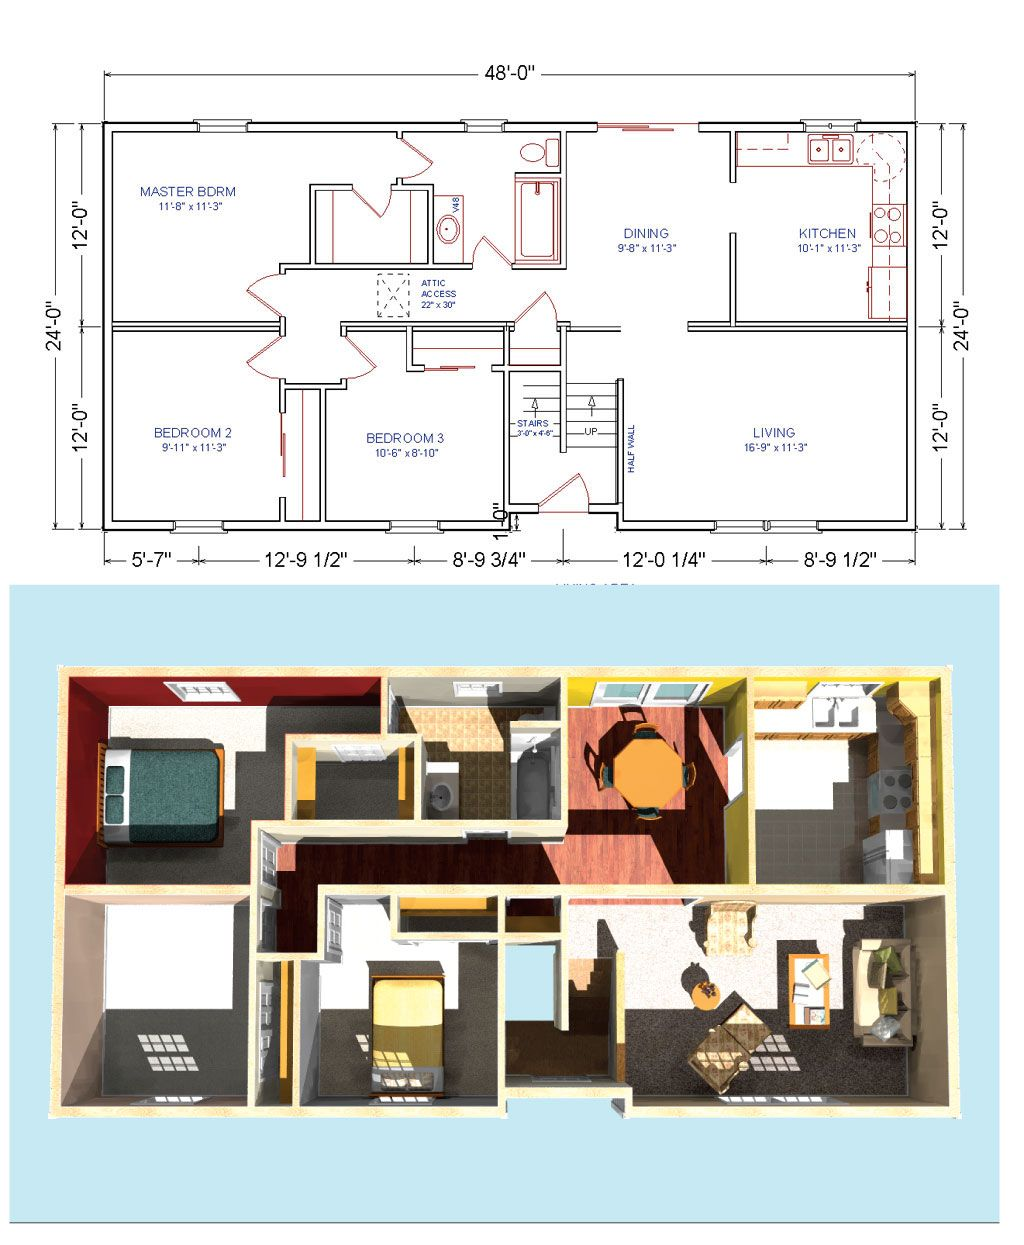 10 Awesome Raised Ranch House Ideas Ranch House Floor Plans Ranch Ranch House Plans